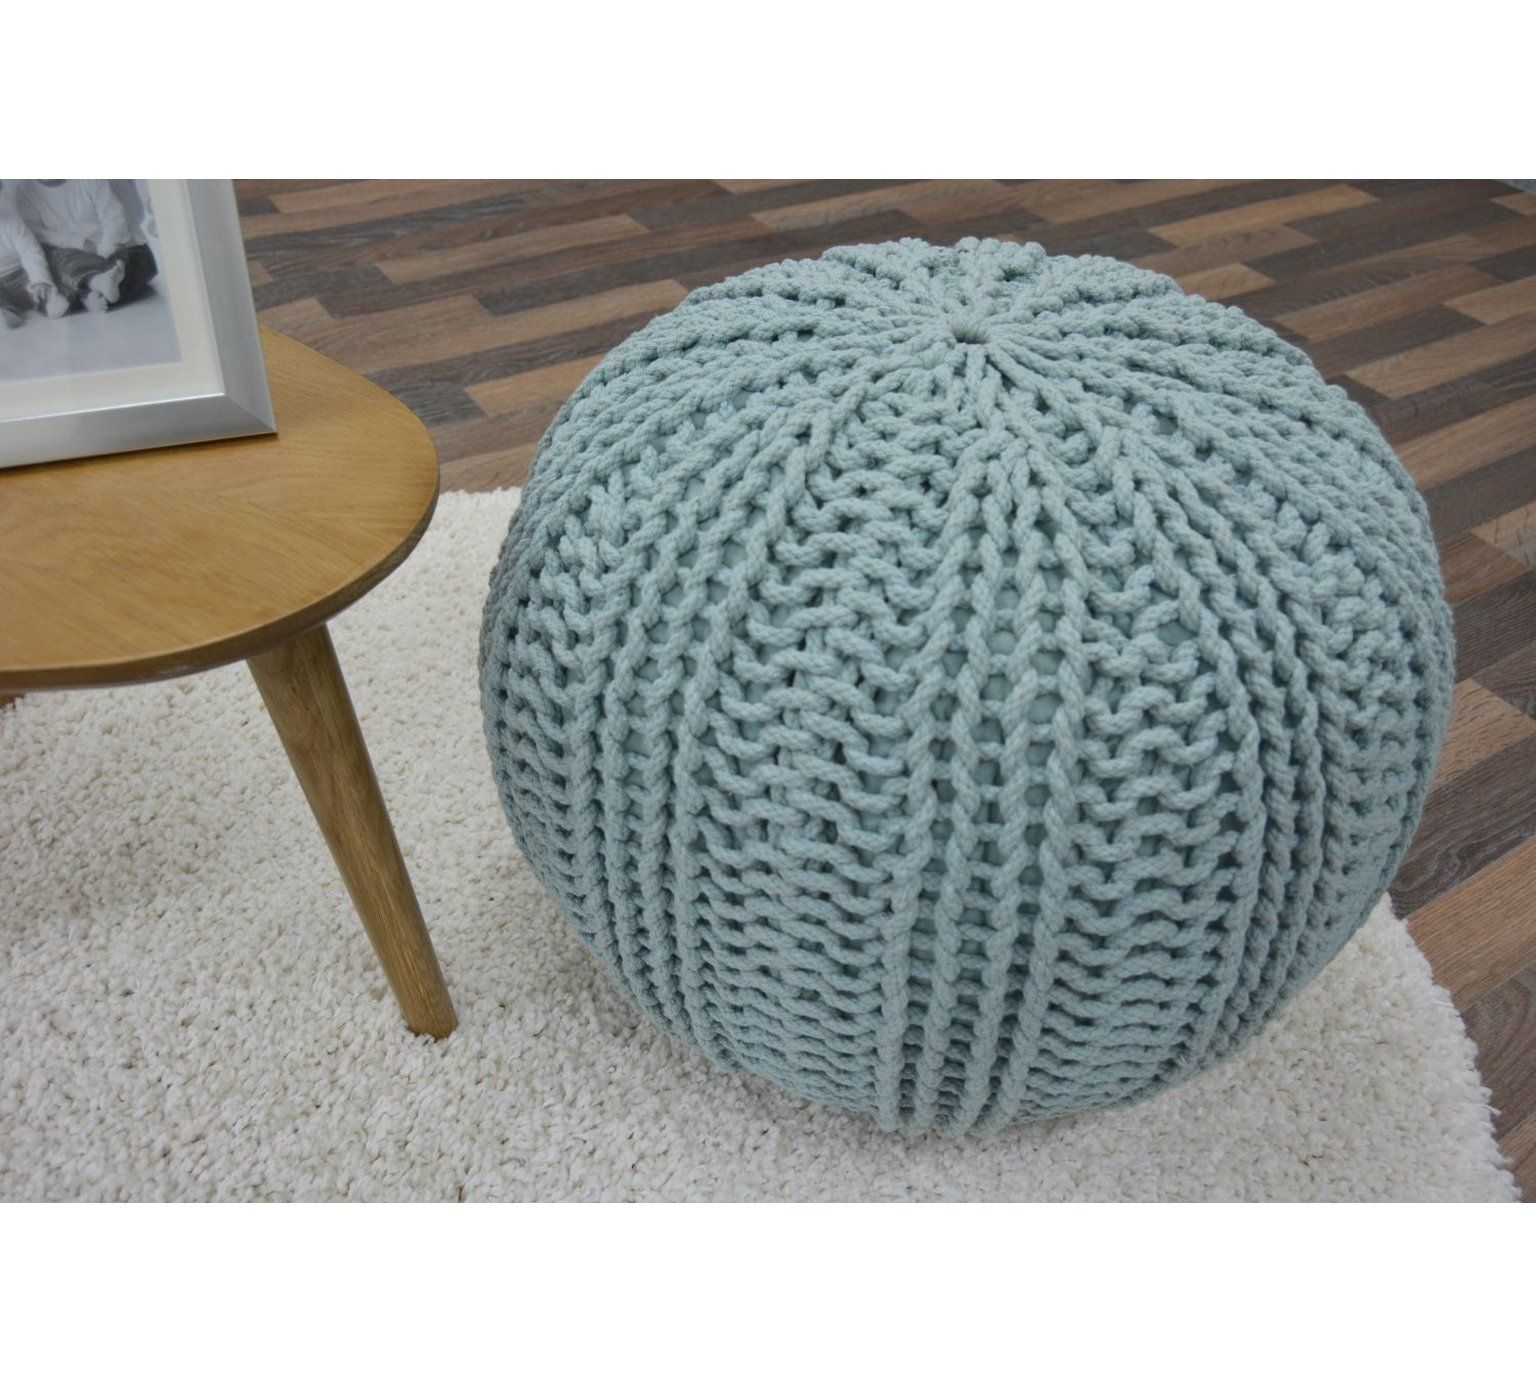 Buy Knitted Pouffe Footstool Duck Egg At Argos Co Uk Visit Argos Co Uk To Shop Online For Footstools Living Roo Living Room Furniture Pouffe Knitted Pouffe